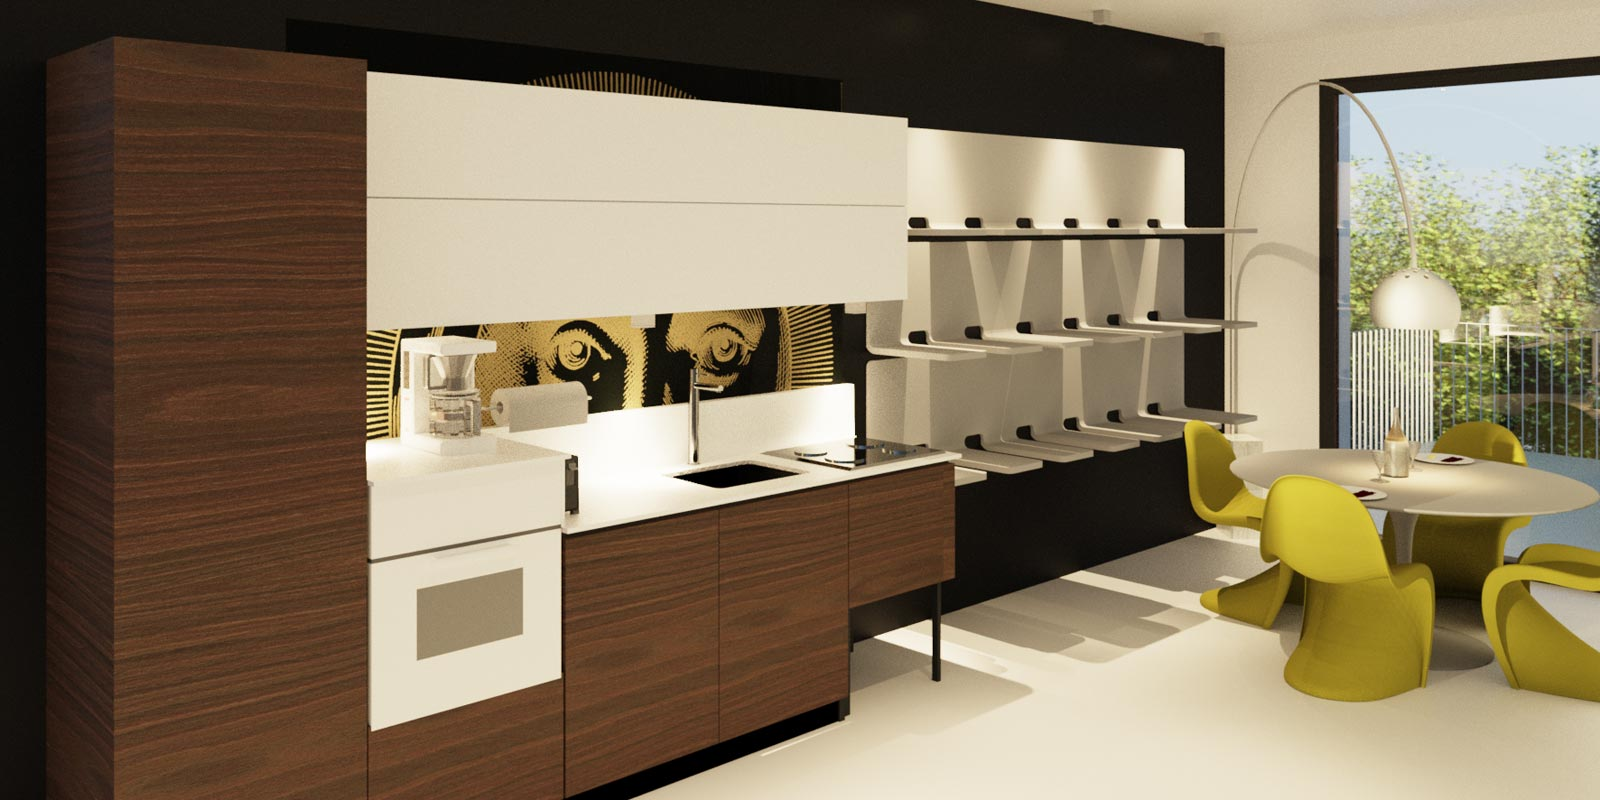 Awesome Sostituzione Ante Cucina Gallery - Home Interior Ideas ...